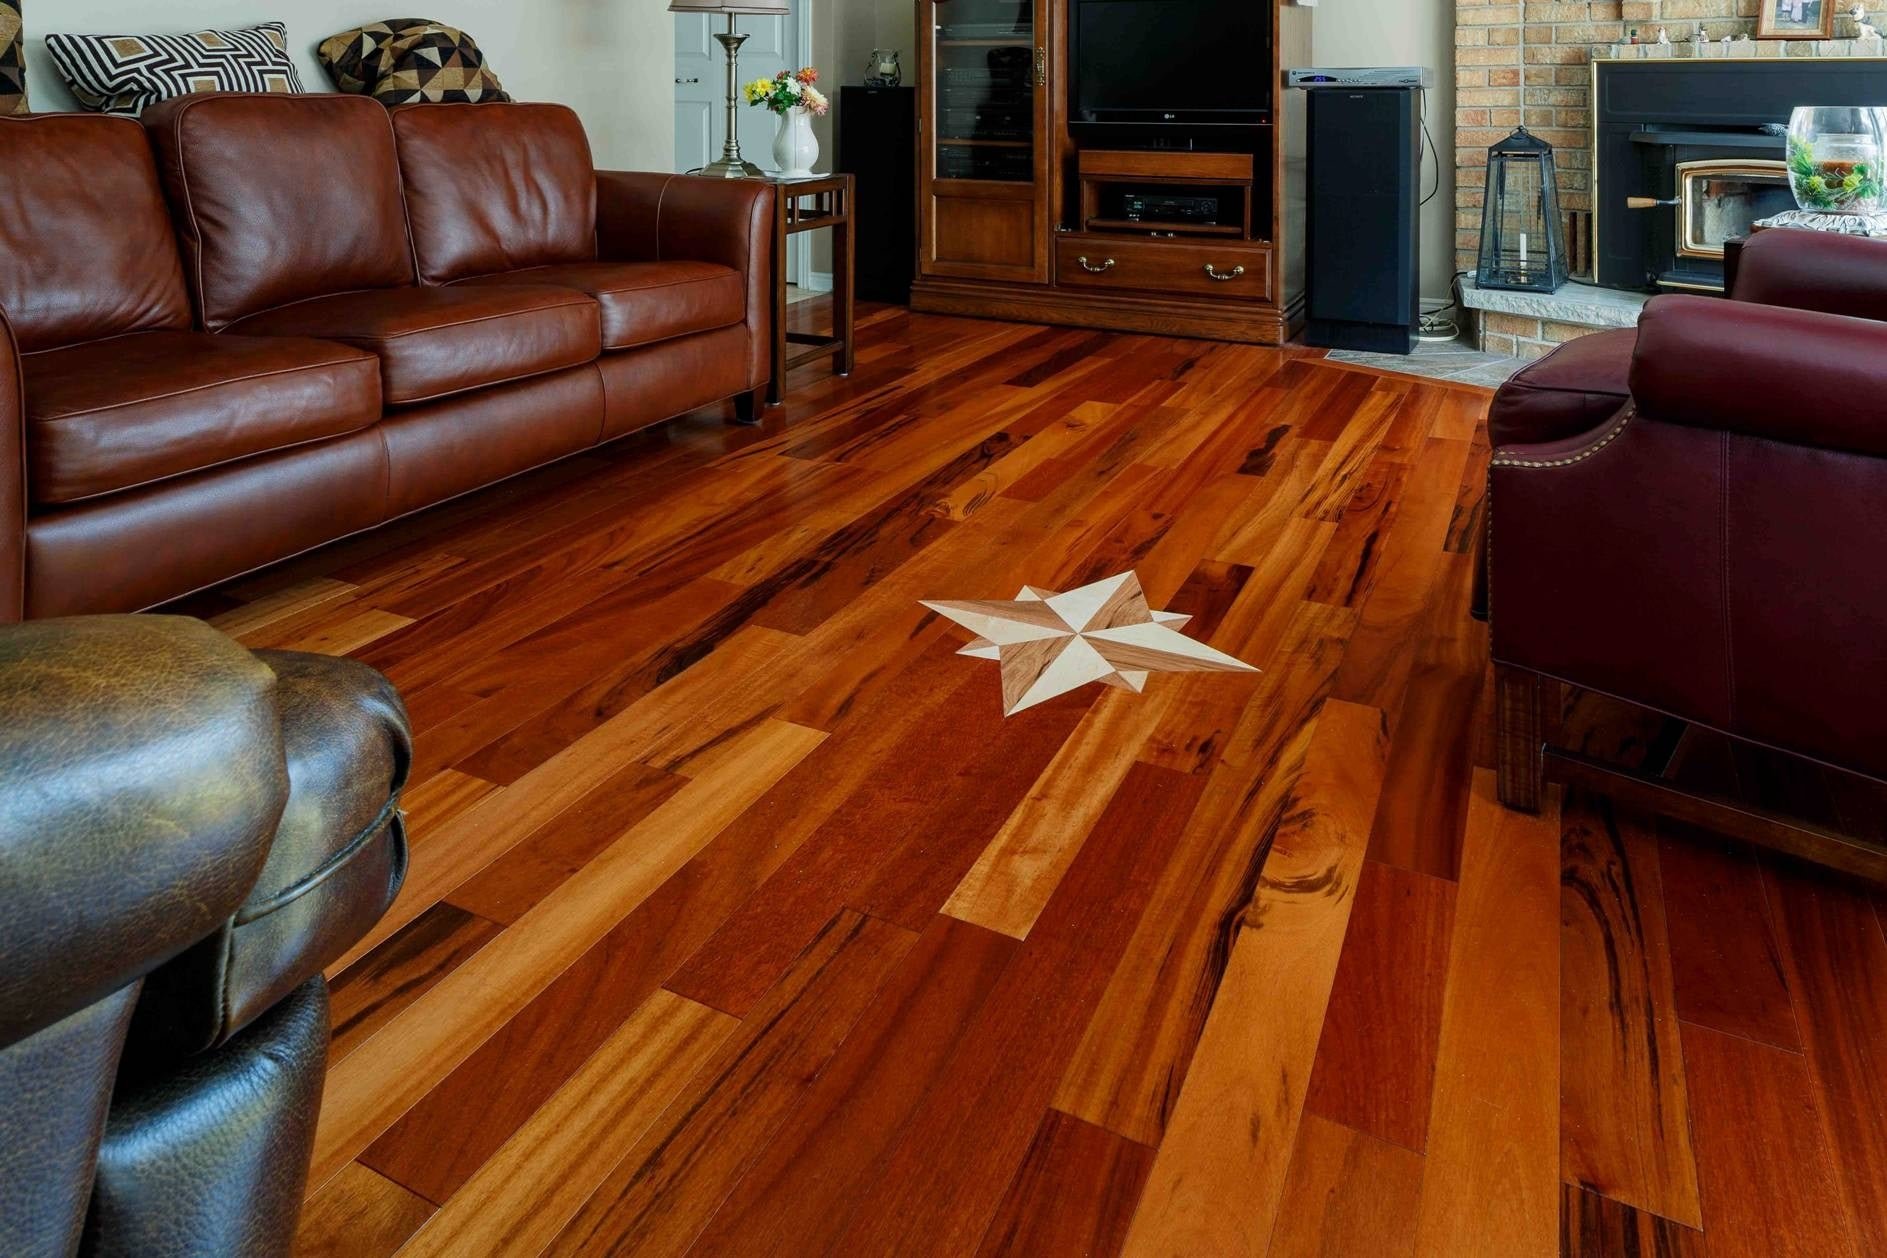 How to install a hardwood floor diy guidelines from hardwood tigerwood hardwood flooring solutioingenieria Image collections